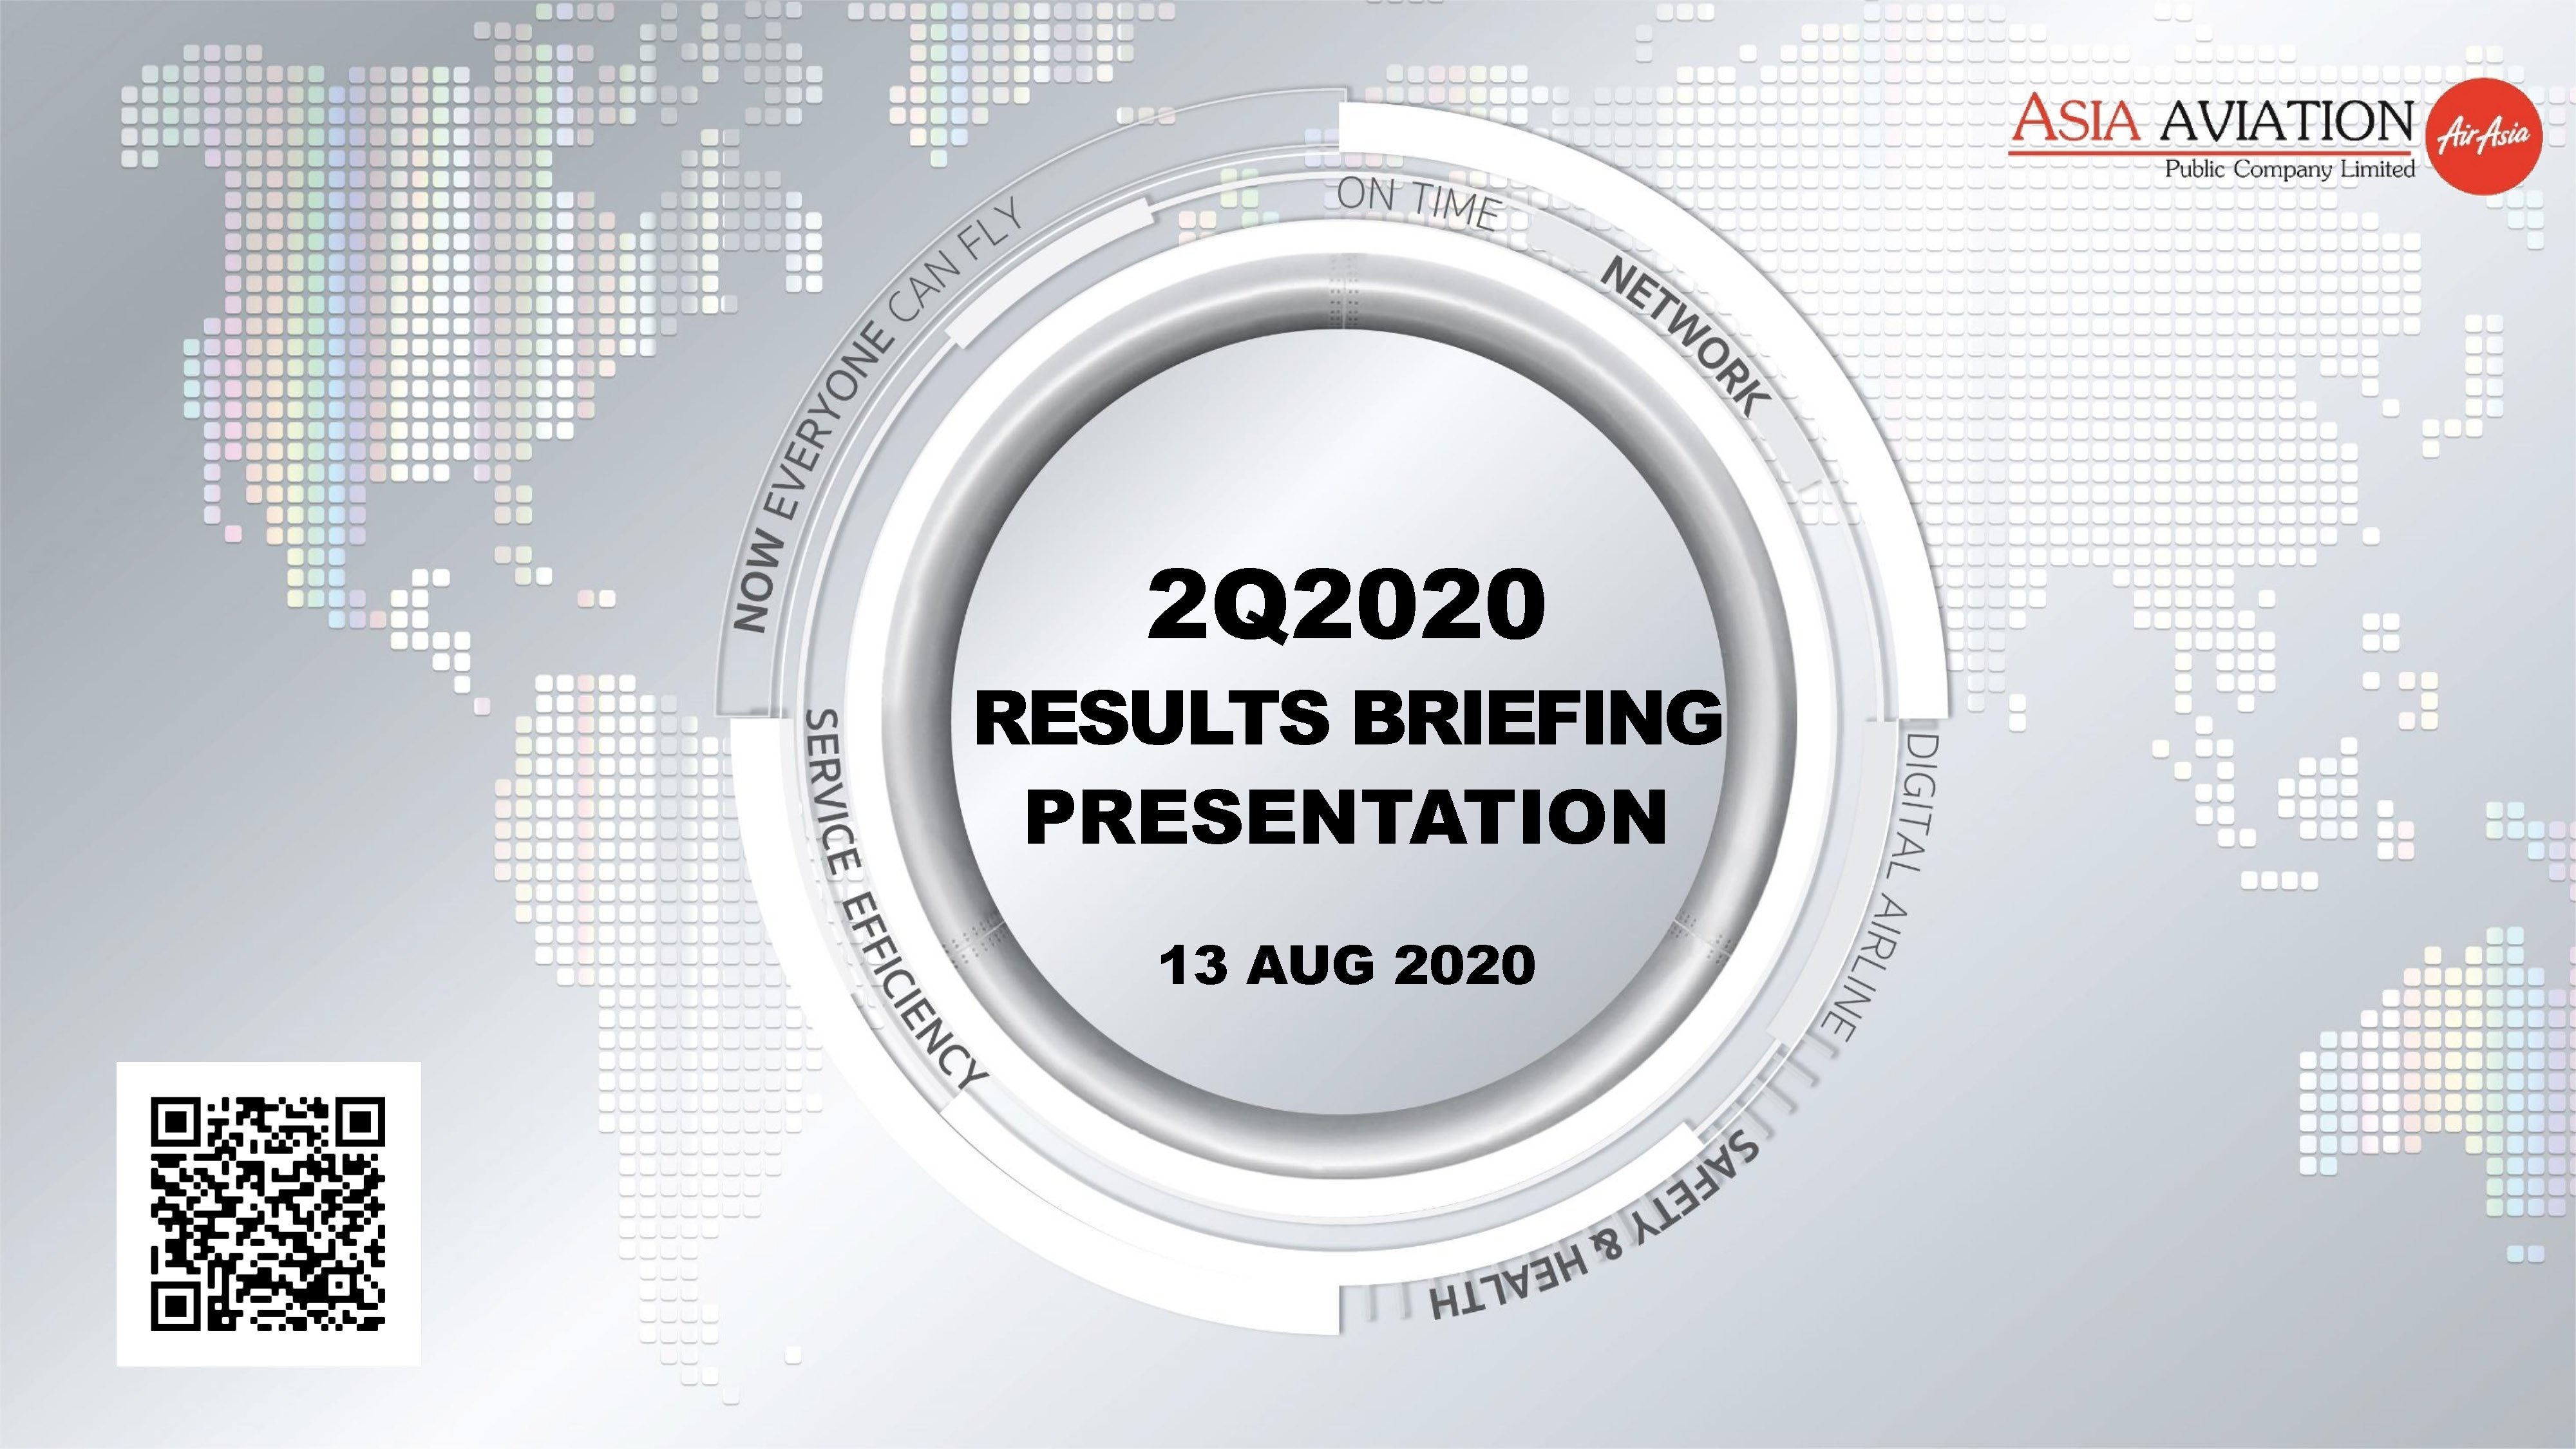 RESULTS BRIEFING Q2/2020